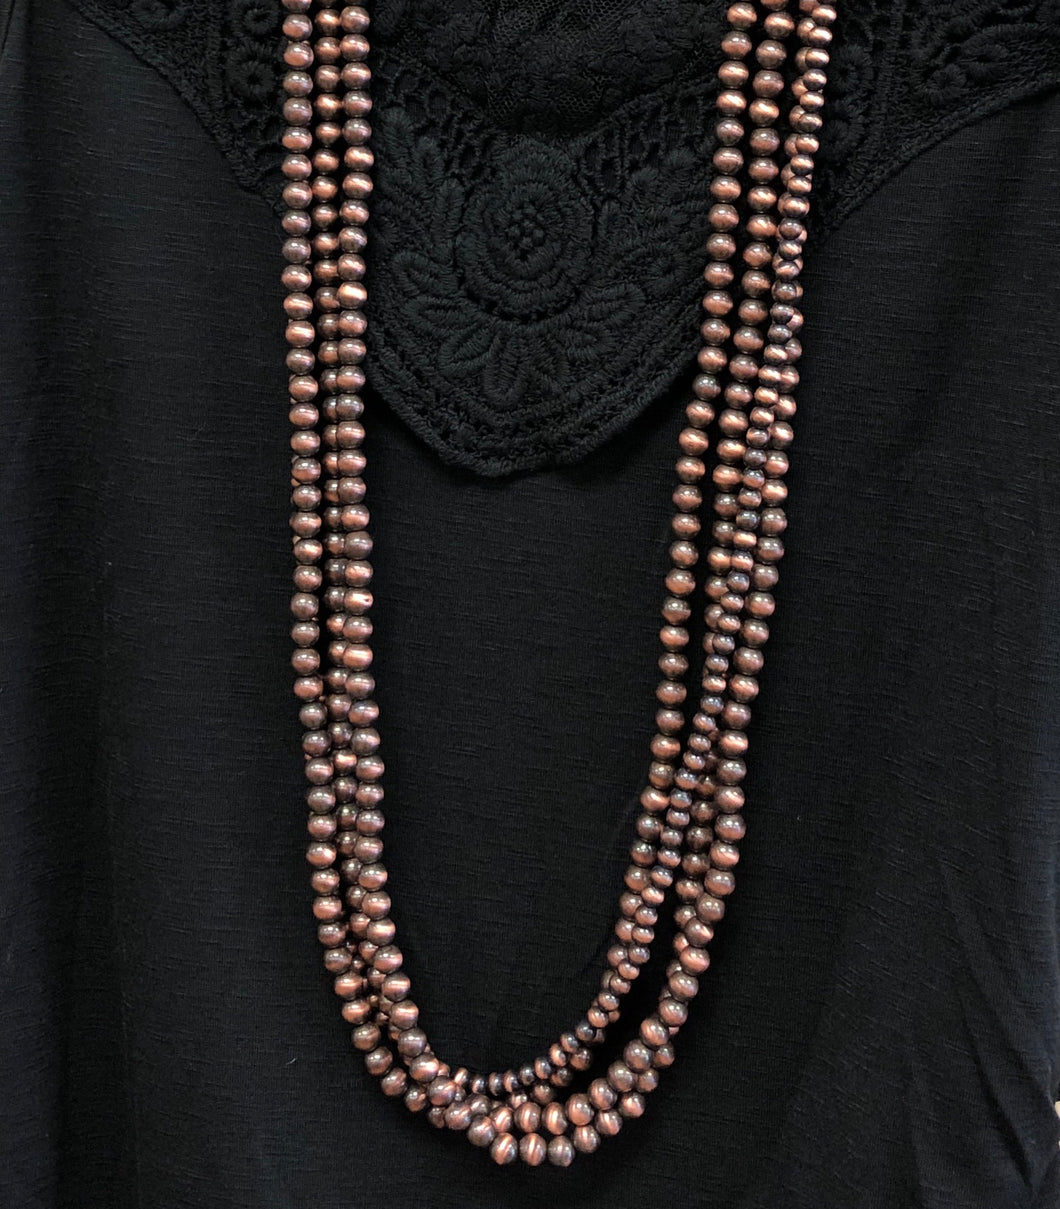 Long Bronze Navajo Pearl 3 Strand Necklace & Earring Set